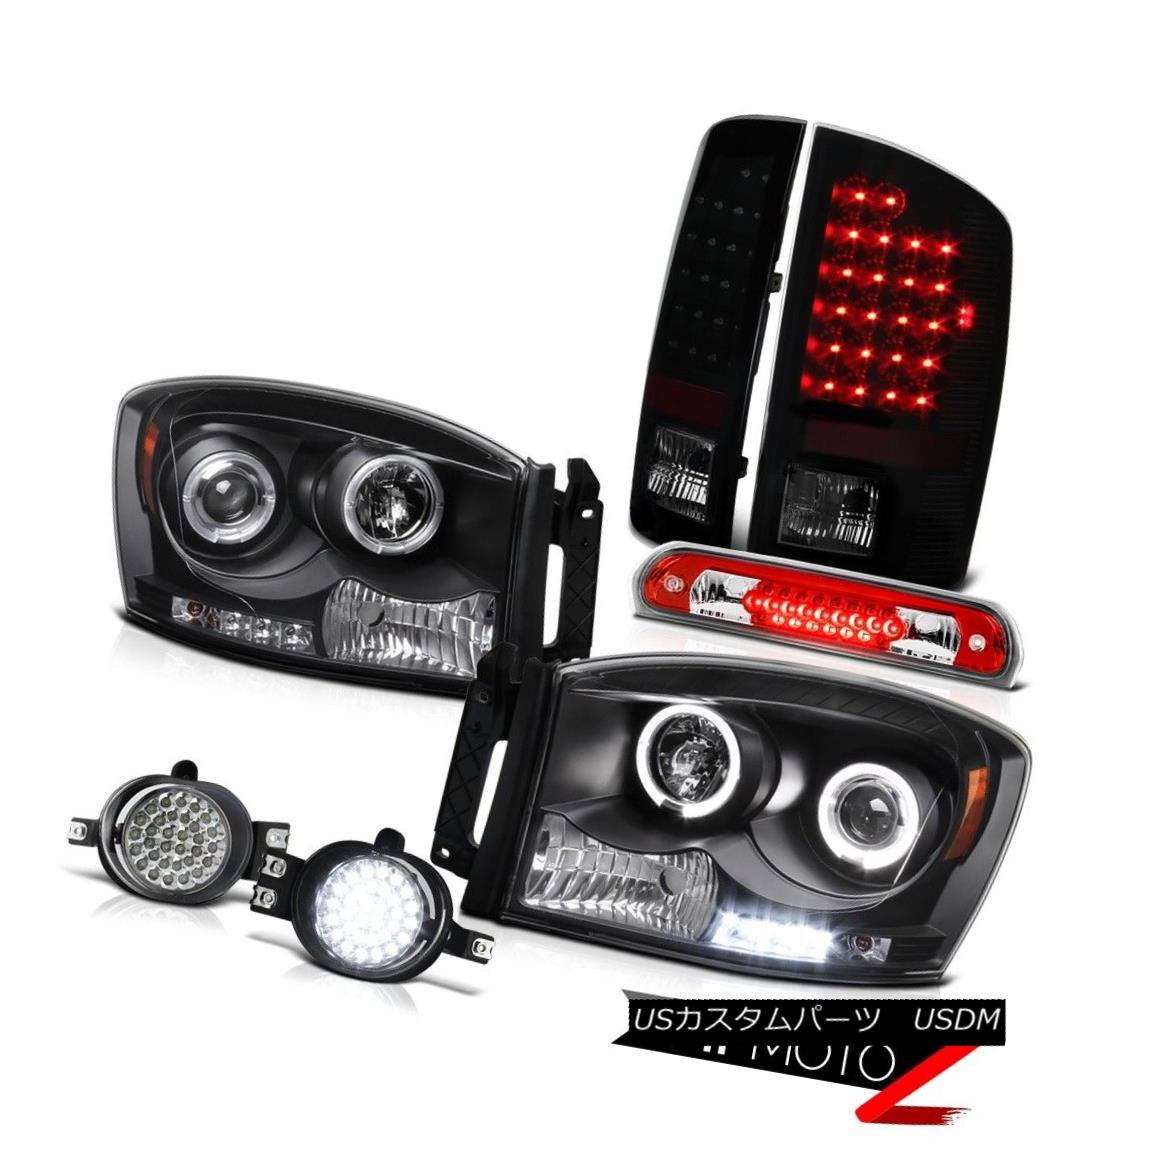 テールライト 2007 2008 Dodge Ram Headlights SMD Halo Smoke LED Tail Light Foglights 3rd Brake 2007年のDodge RamヘッドライトSMD Halo Smoke LEDテールライトFoglights 3rdブレーキ